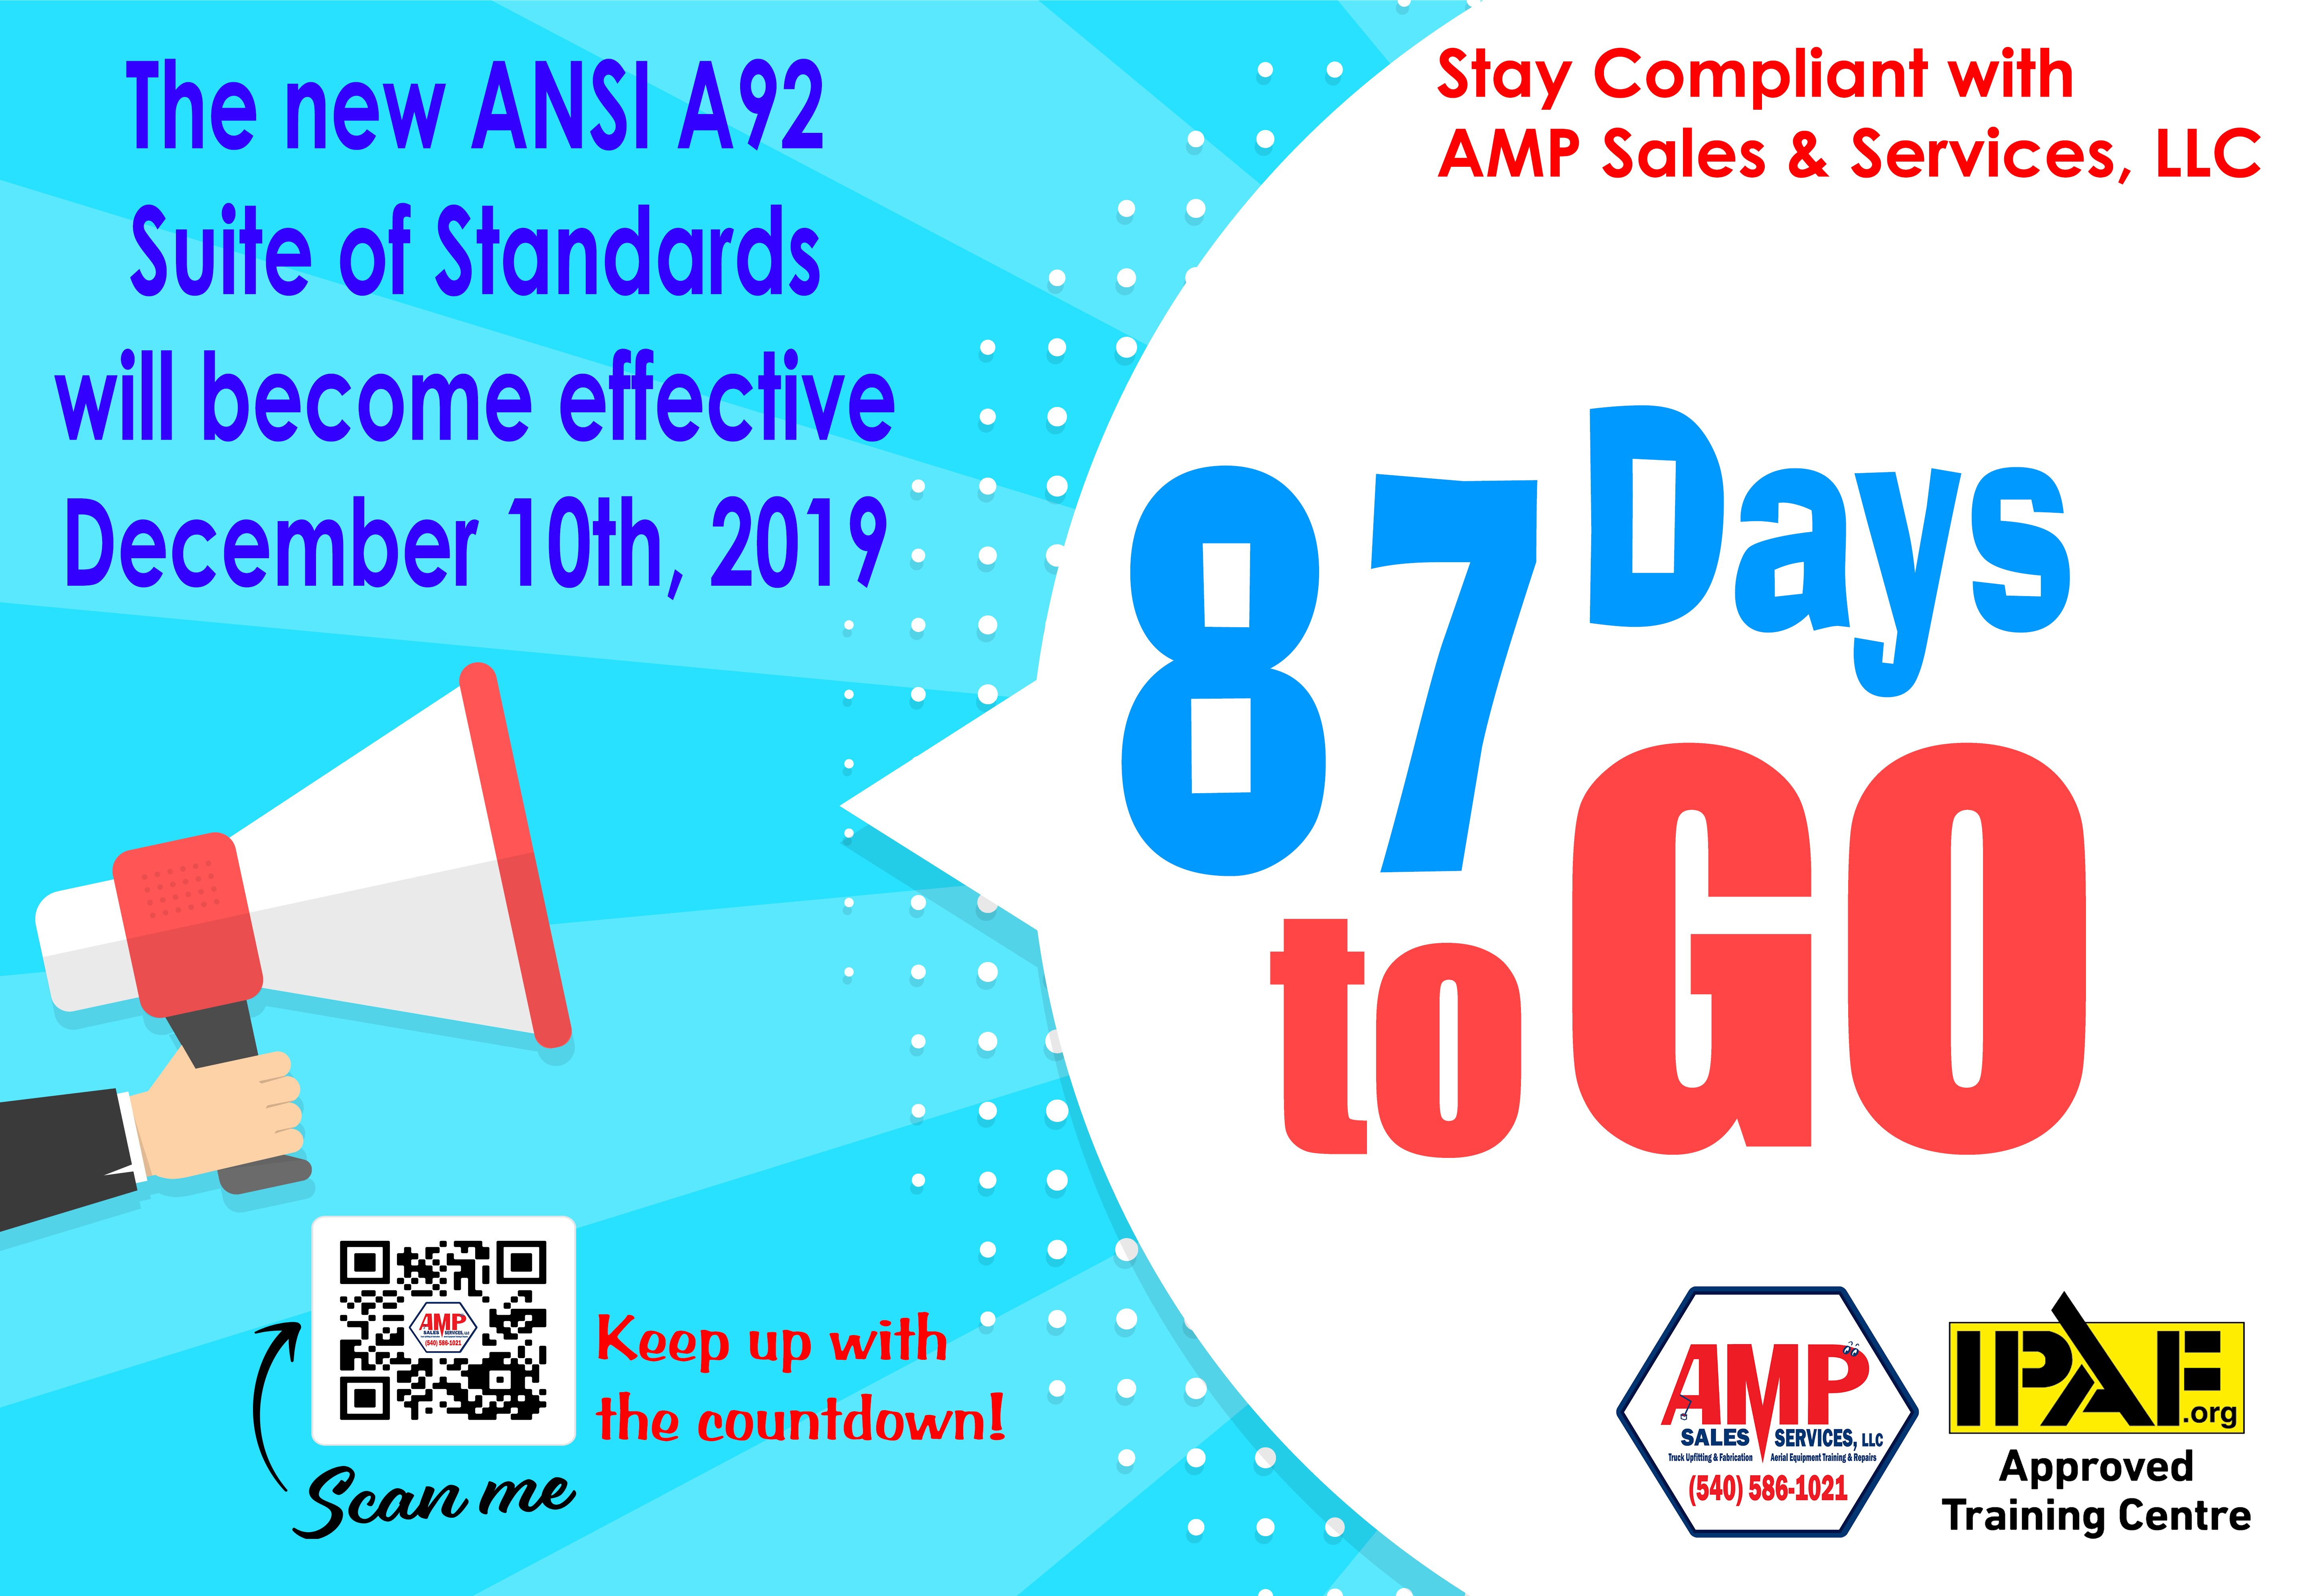 87 Days to Go – The new ANSI A92 Suite of Standards will become effective December 10th, 2019